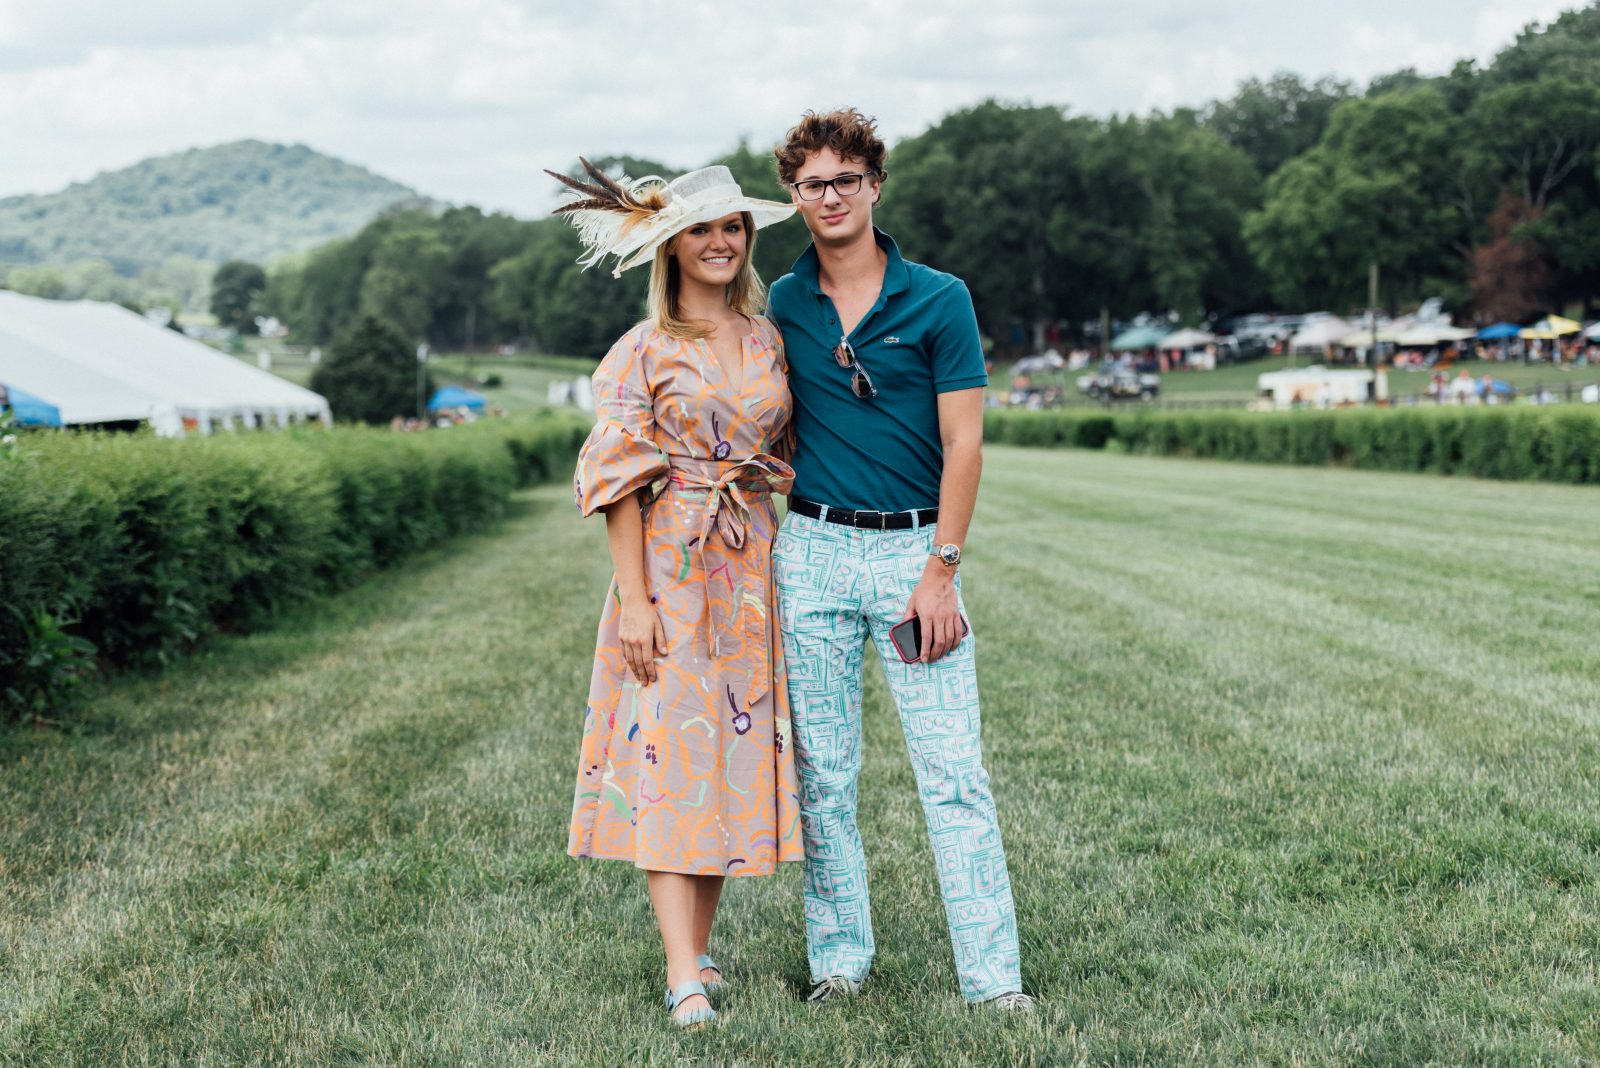 Katie Tanner and Westin Bate at TN Steeplechase 21